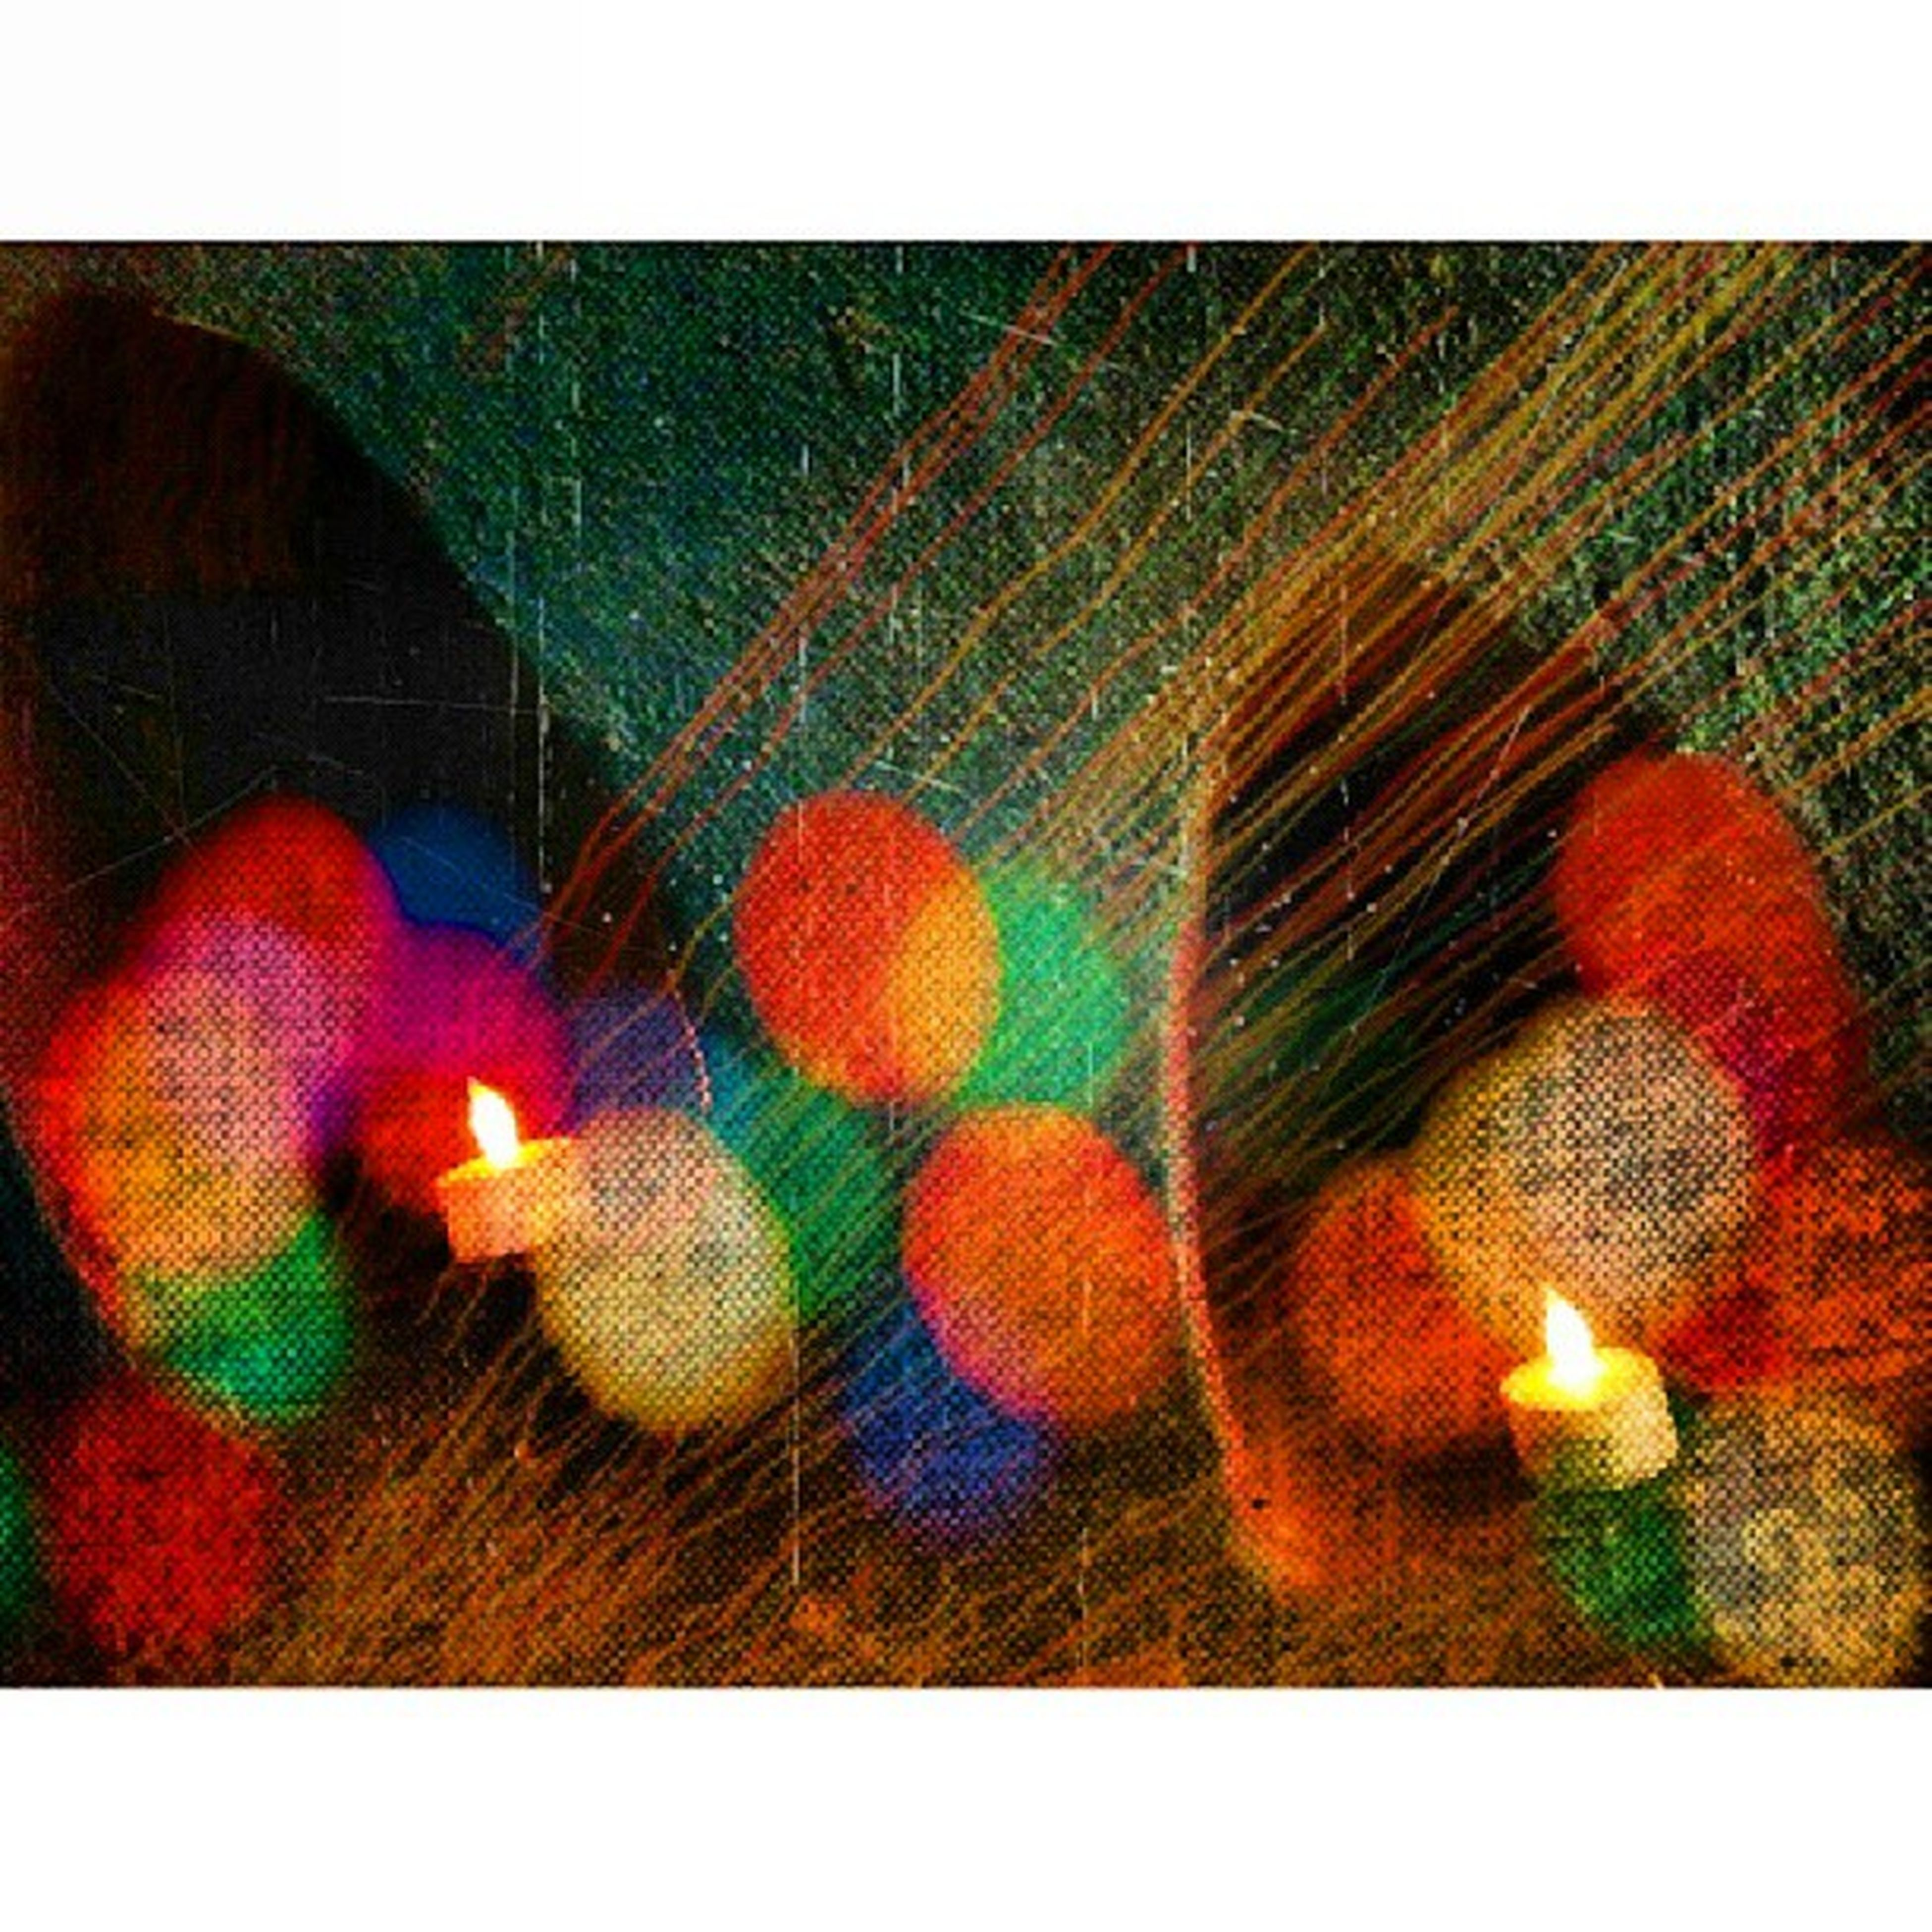 transfer print, auto post production filter, indoors, close-up, illuminated, hanging, decoration, no people, wall - building feature, red, multi colored, orange color, pattern, night, light - natural phenomenon, celebration, reflection, still life, arts culture and entertainment, lighting equipment